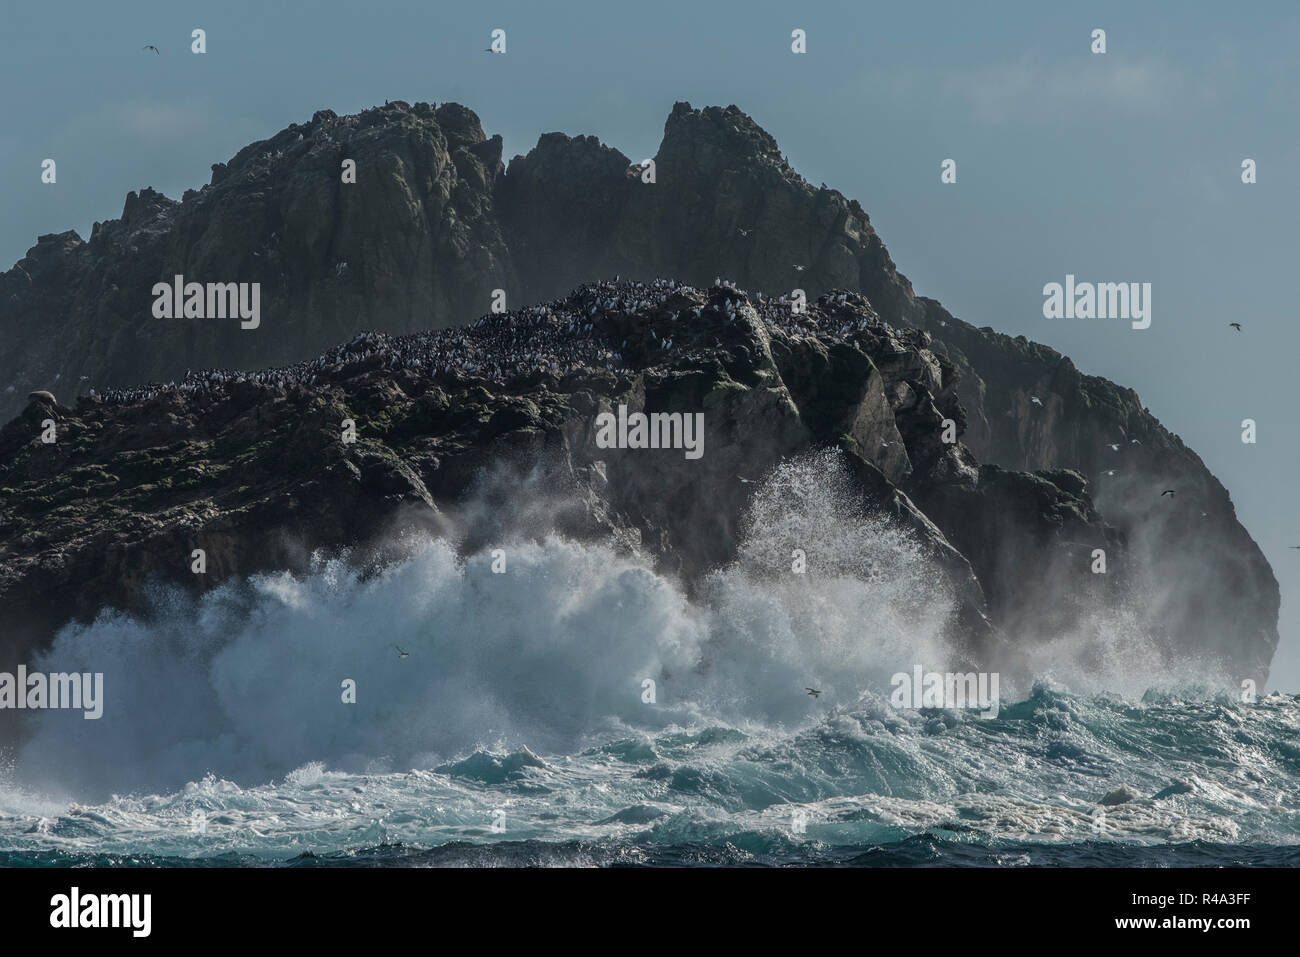 The waves crash against the shore of the Farallon islands off the coast of California, the islands are an important nesting site for pelagic birds. Stock Photo